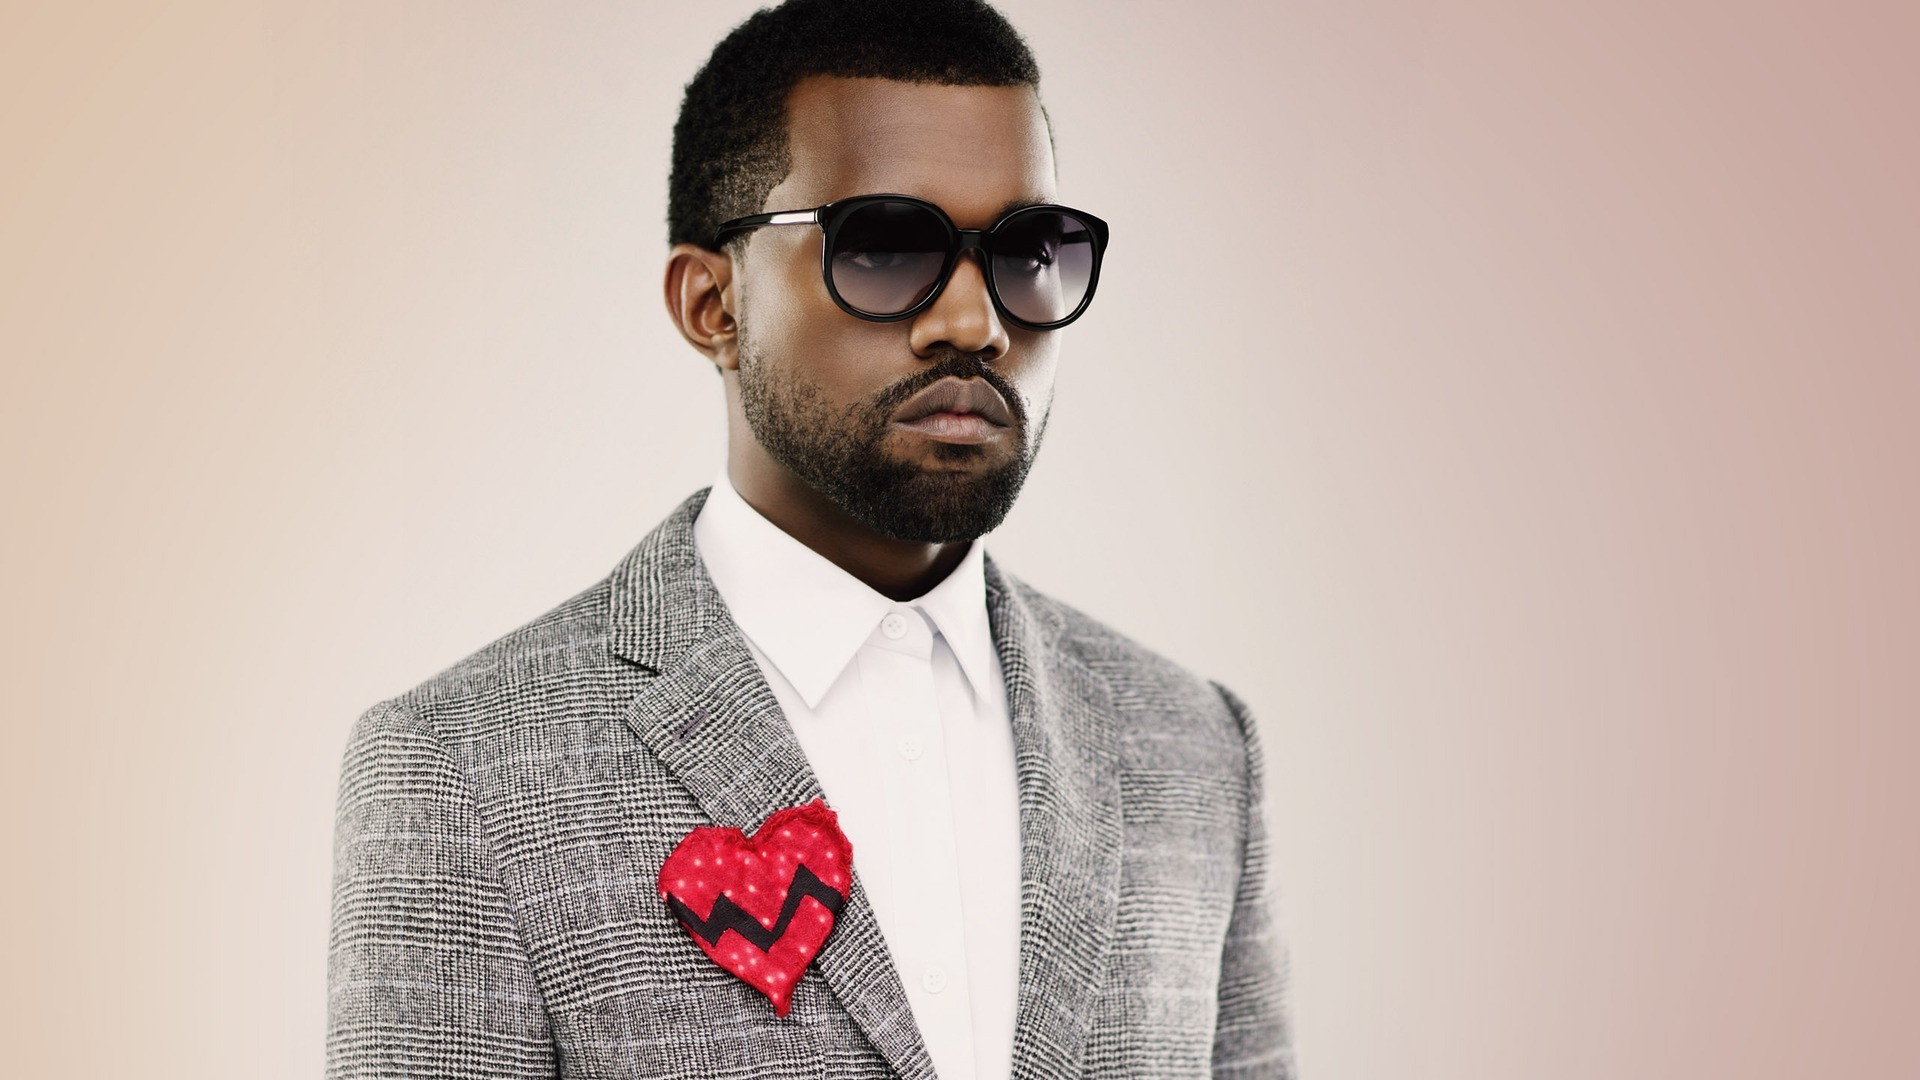 Kanye West Wallpaper   Wallpaper High Definition High Quality 1920x1080